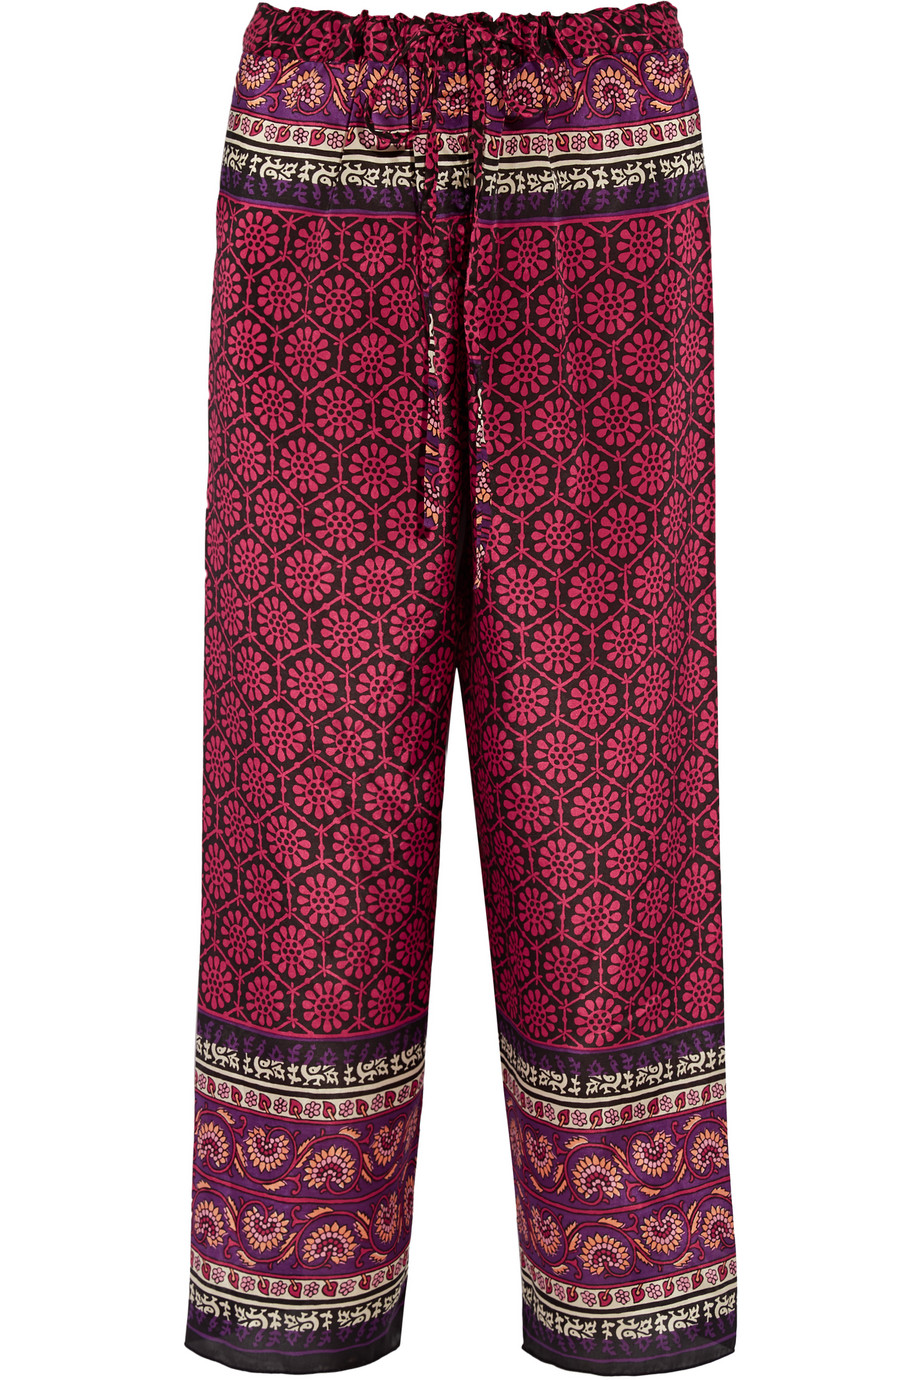 Anna Sui Printed Silk and Cotton-Blend Pants, Magenta/Claret, Women's